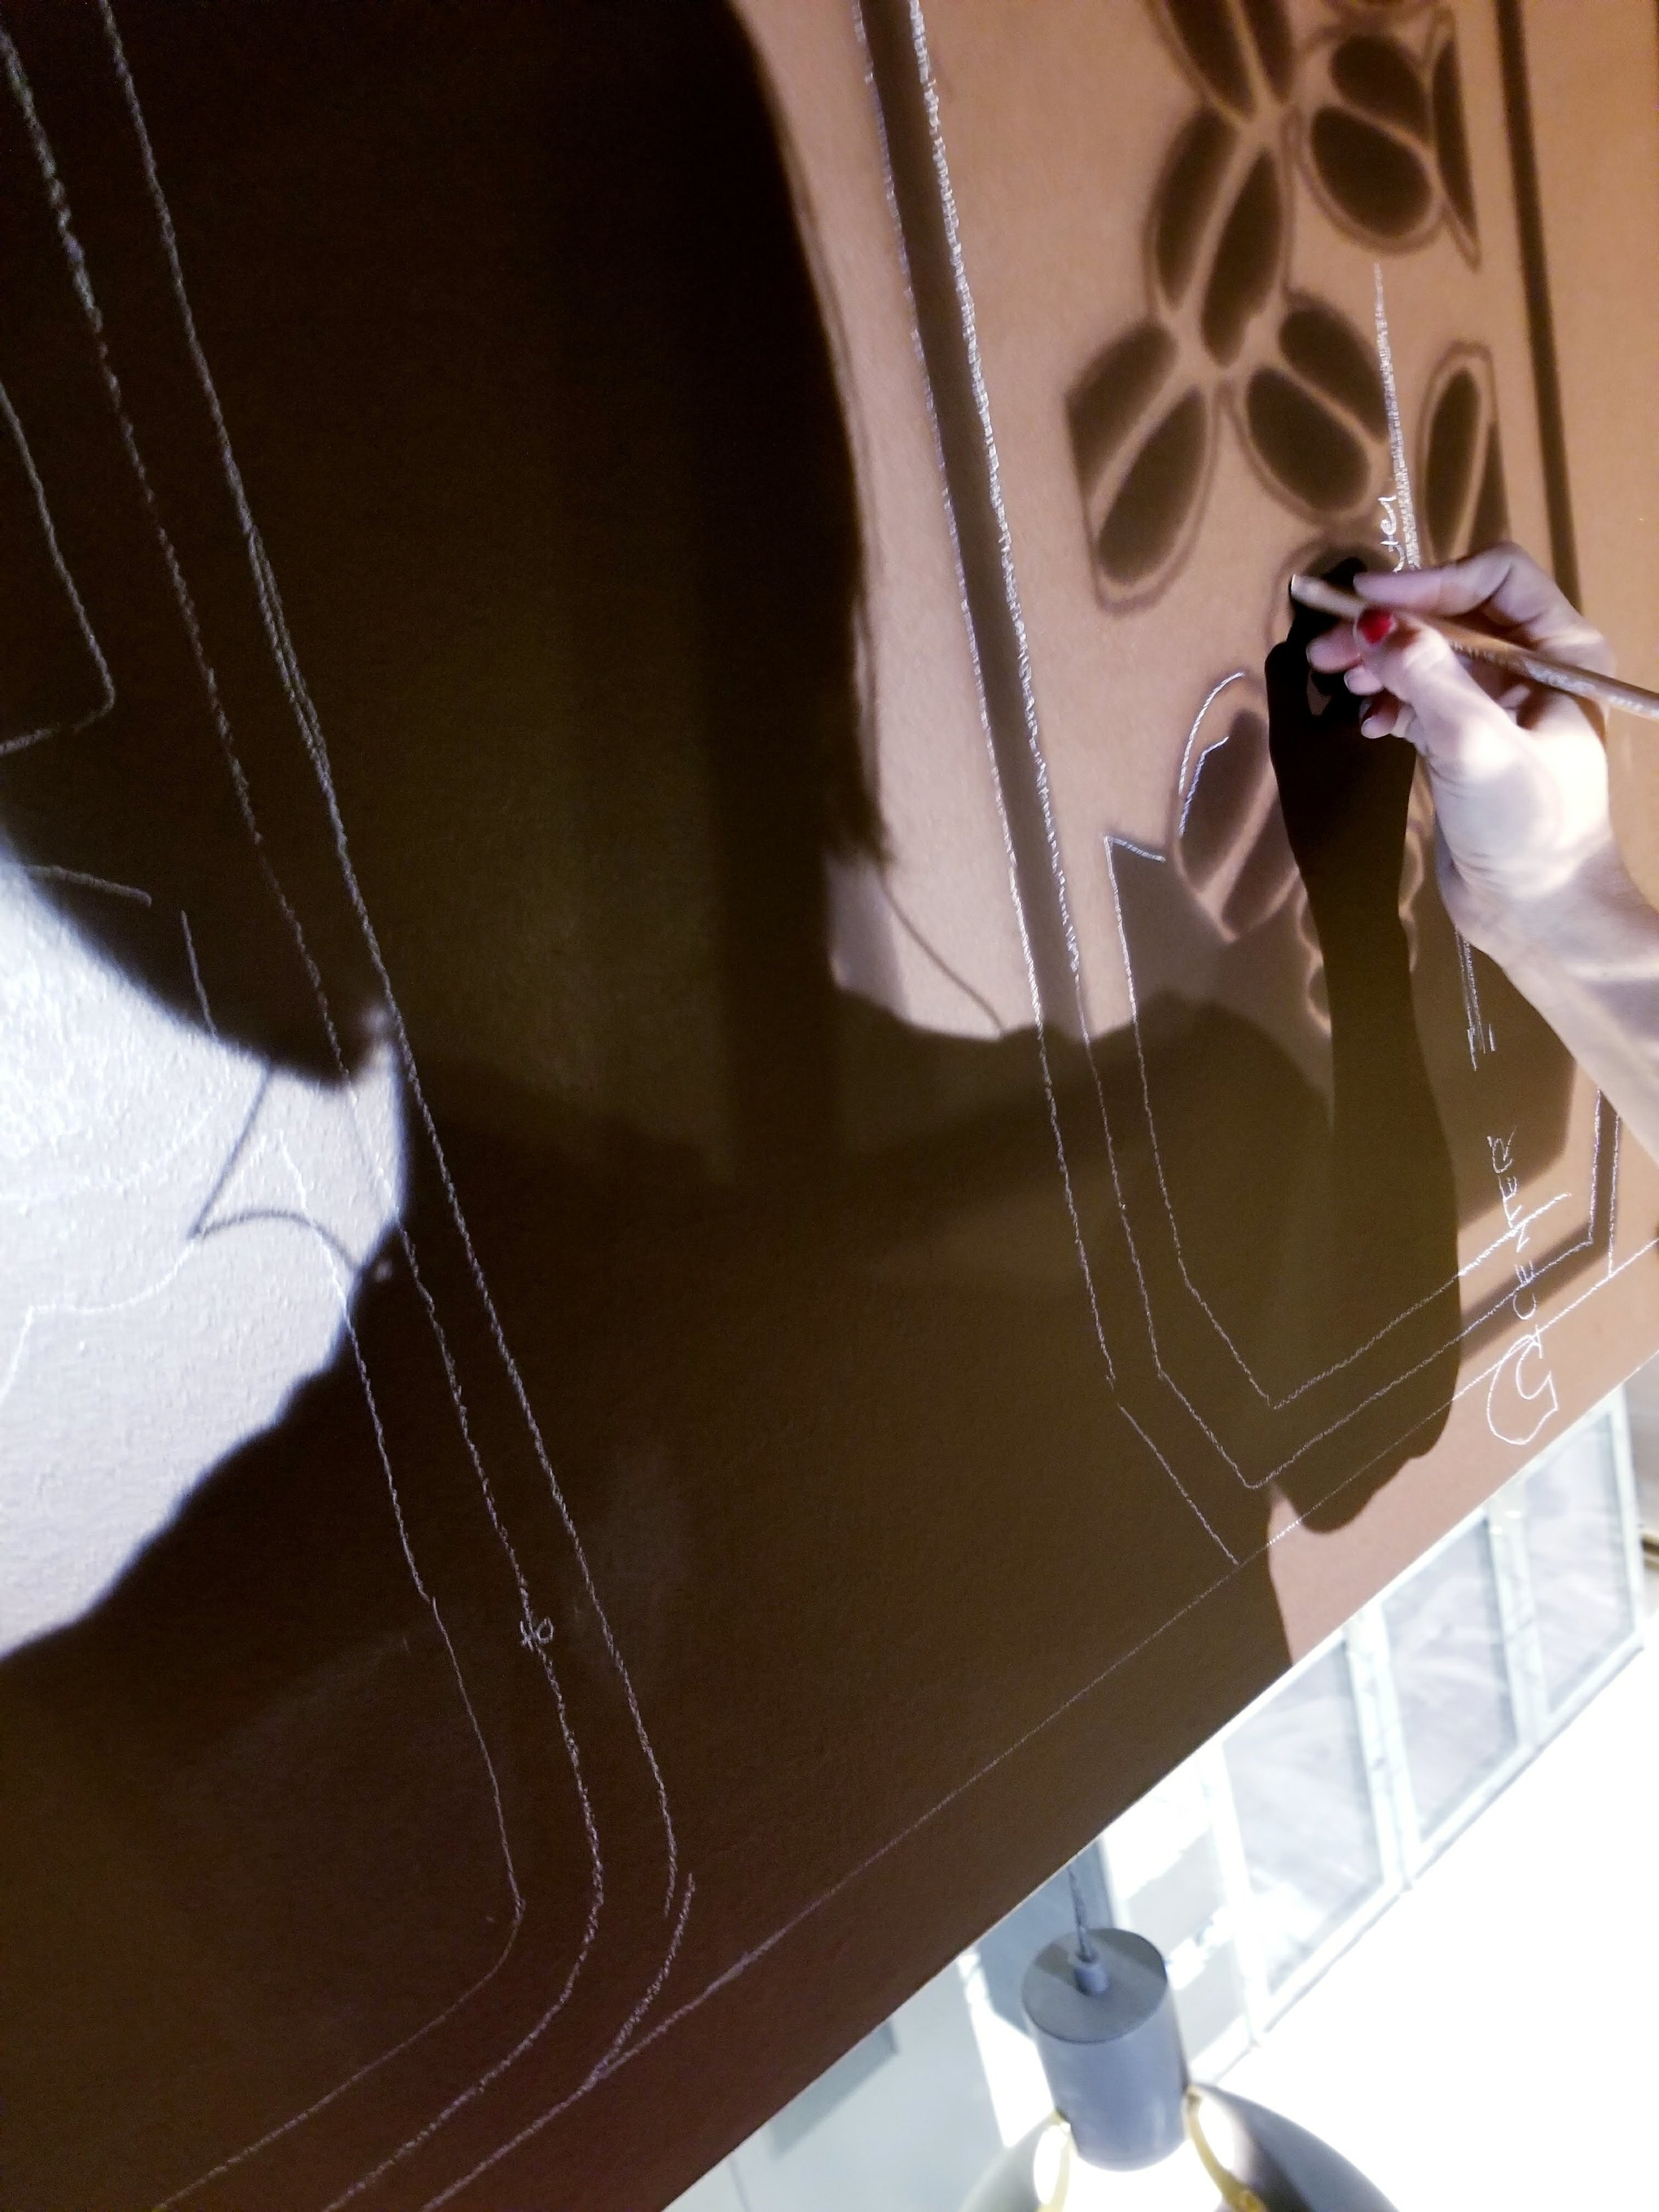 Projecting and tracing the outlines of the design onto the wall